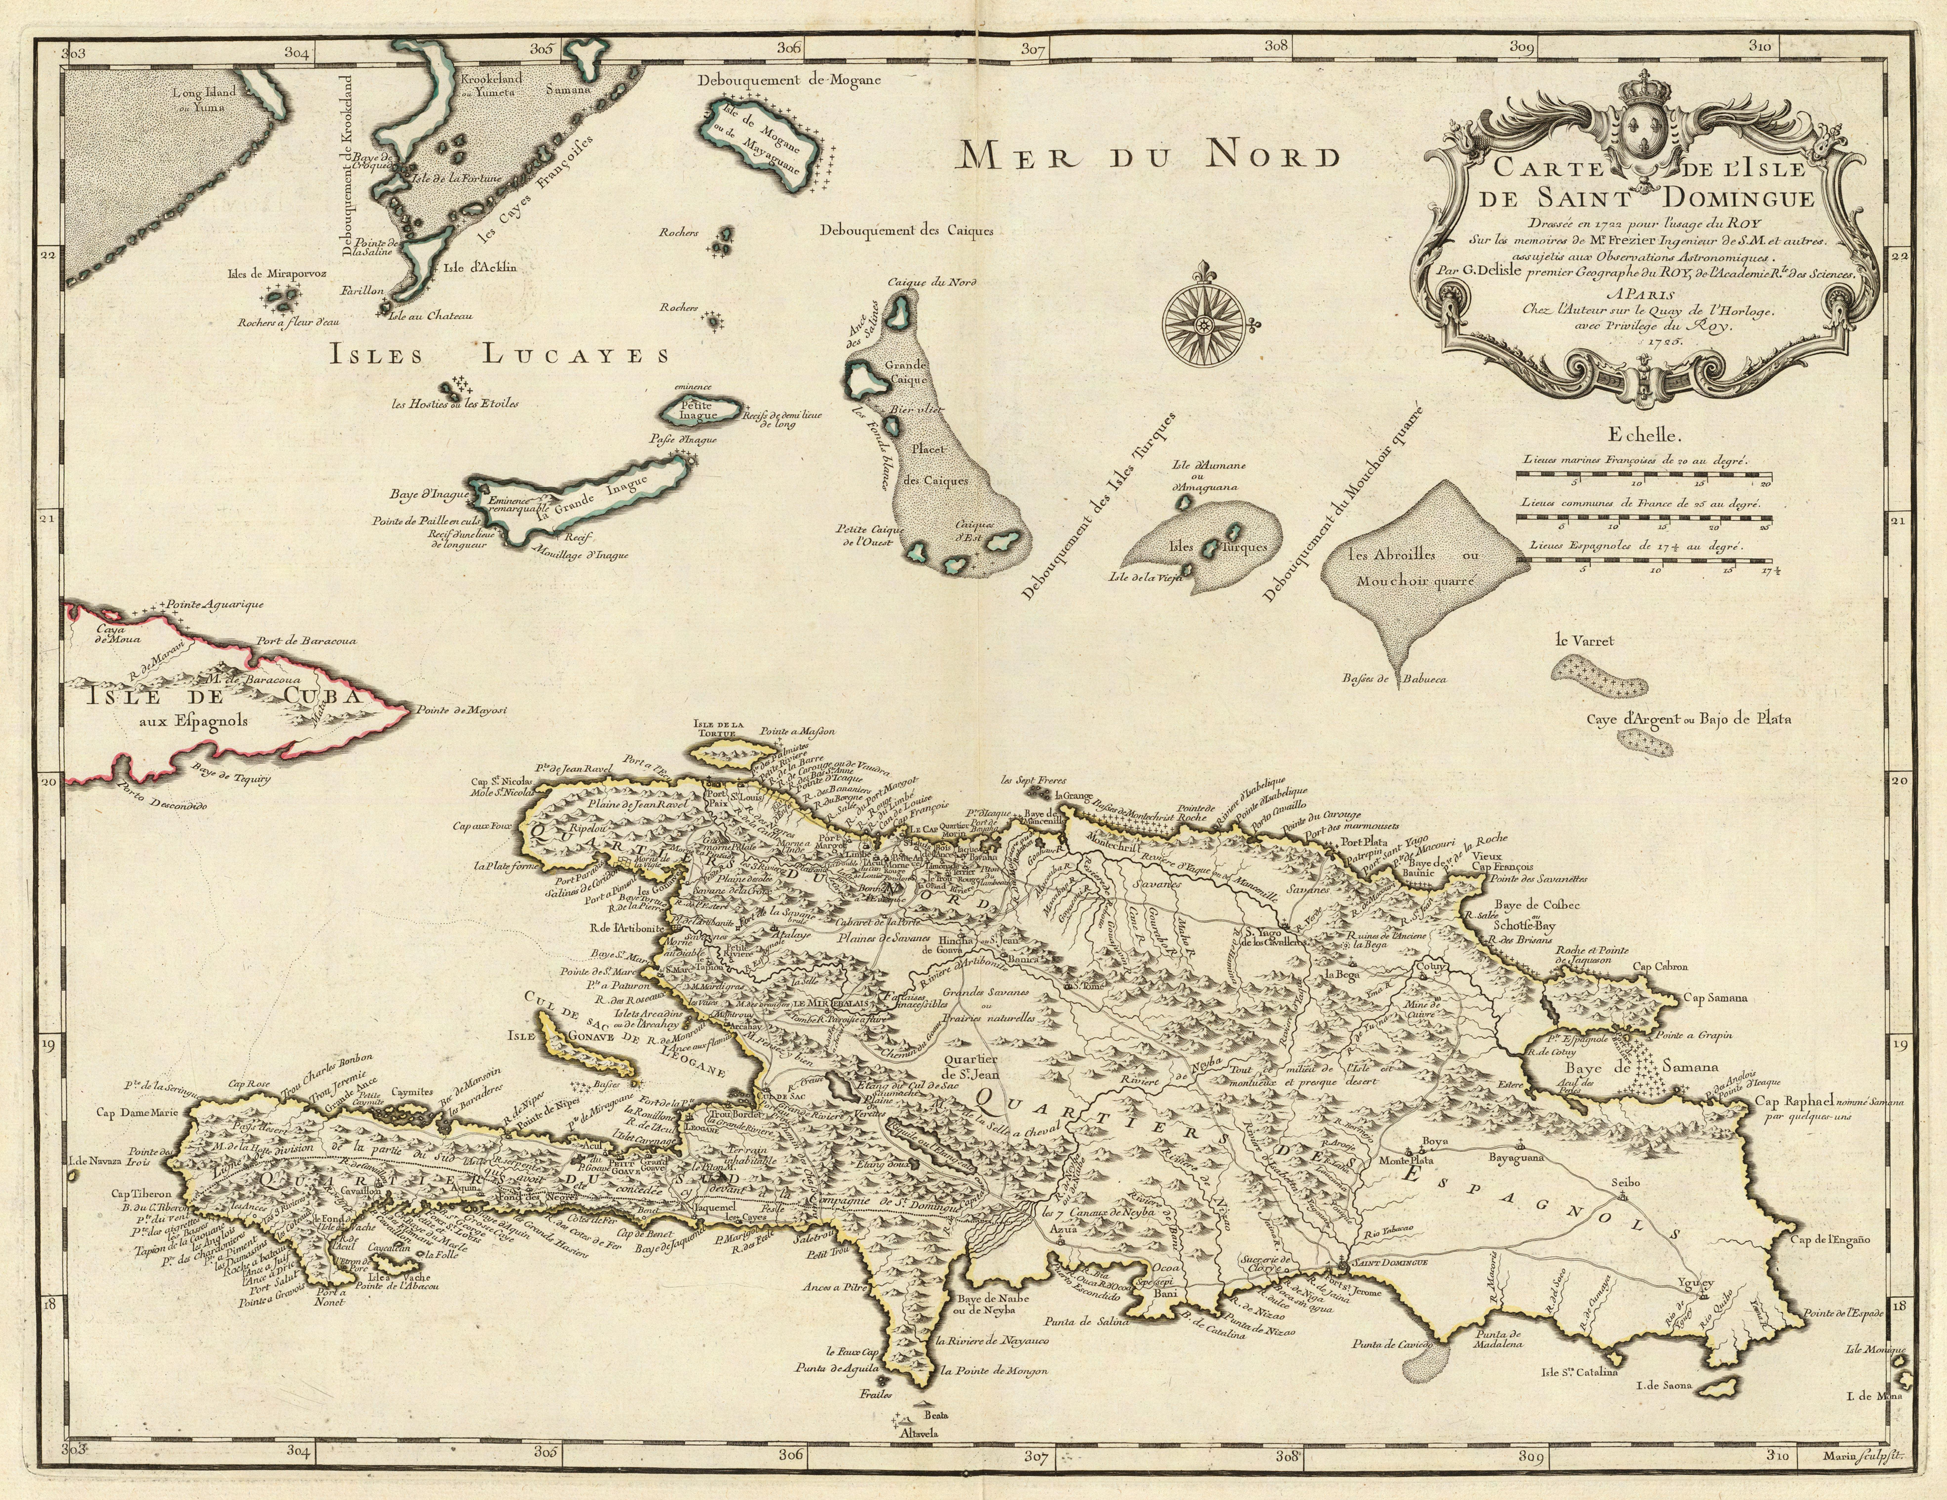 http://frederic.berjaud.free.fr/Articles_de_Didier_Davin/un_soldat_colonial_a_saint_domingue_1791_1809/St_Domingue.png